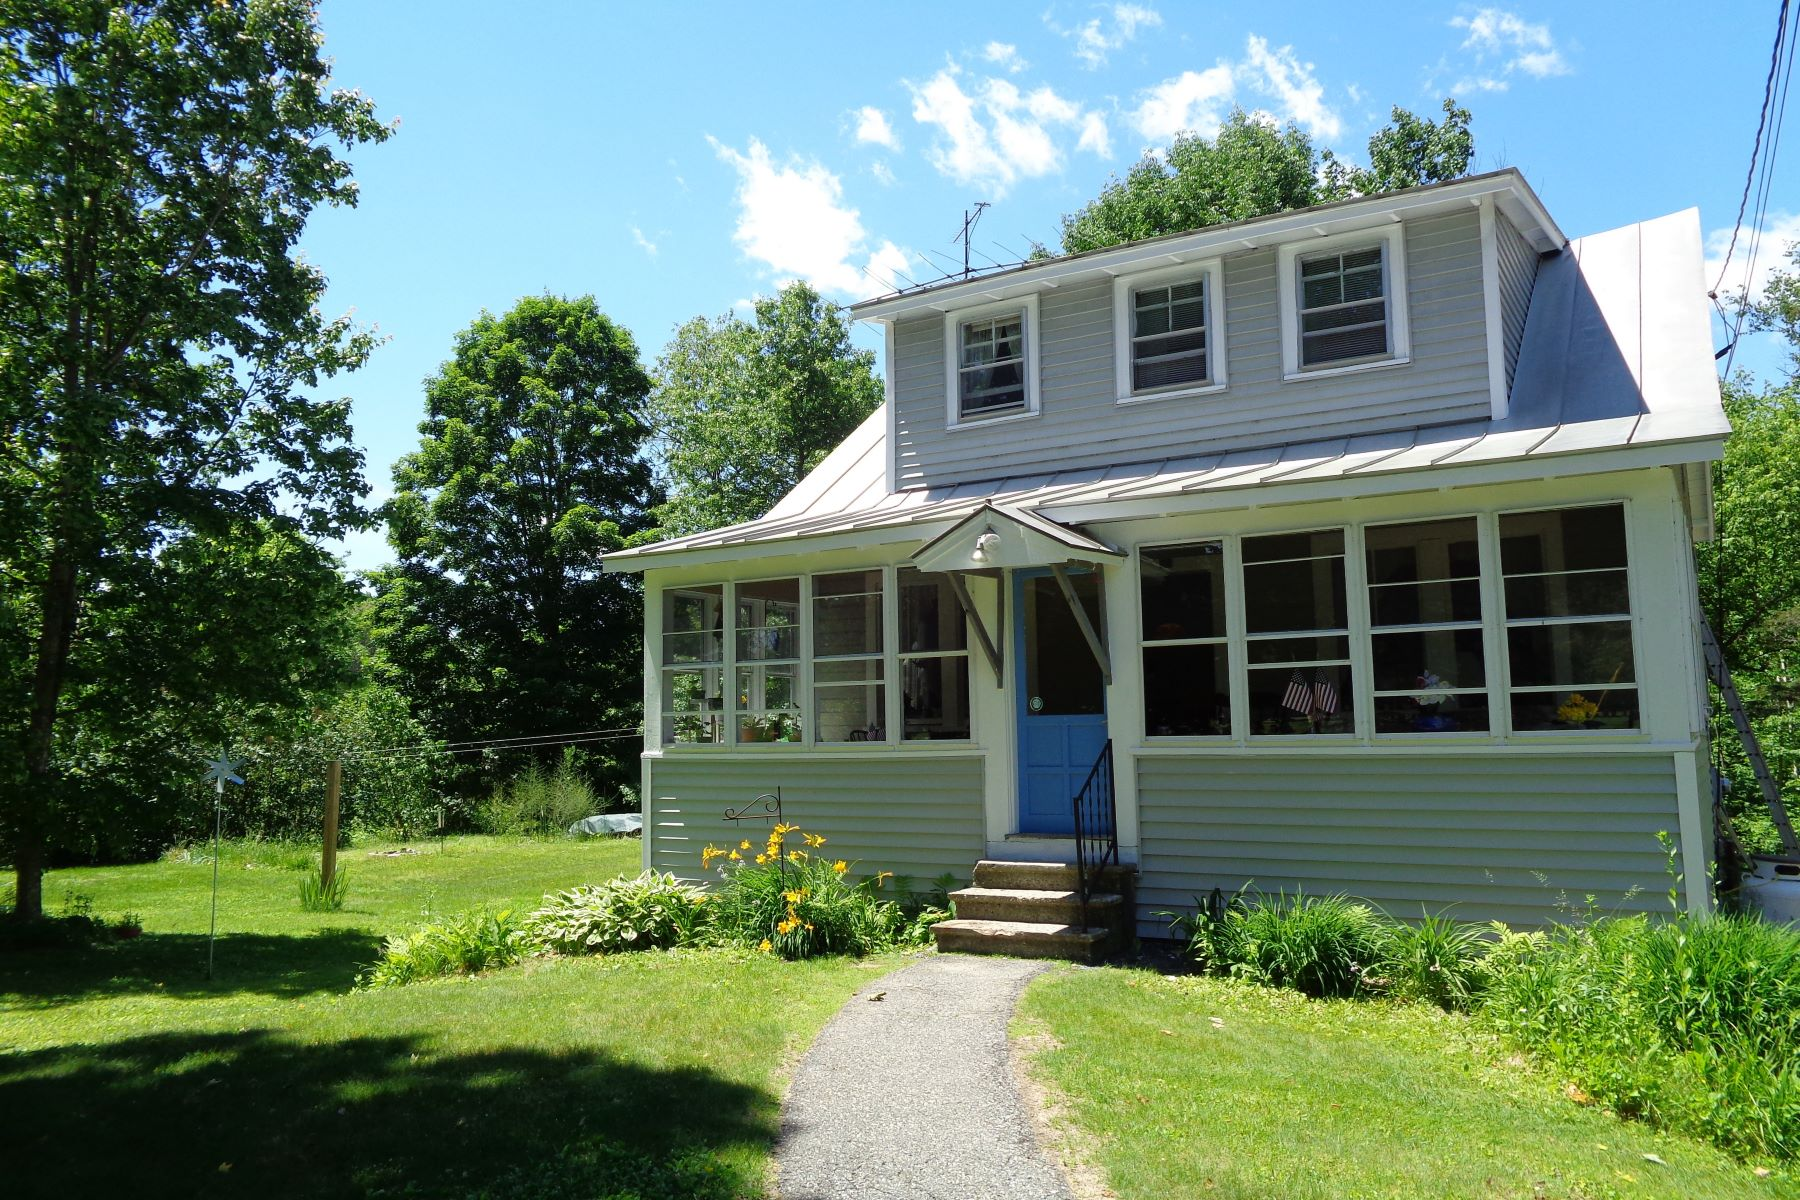 Single Family Homes for Sale at Three Bedroom Cape in Fairlee 147 Brennan Rd Fairlee, Vermont 05045 United States